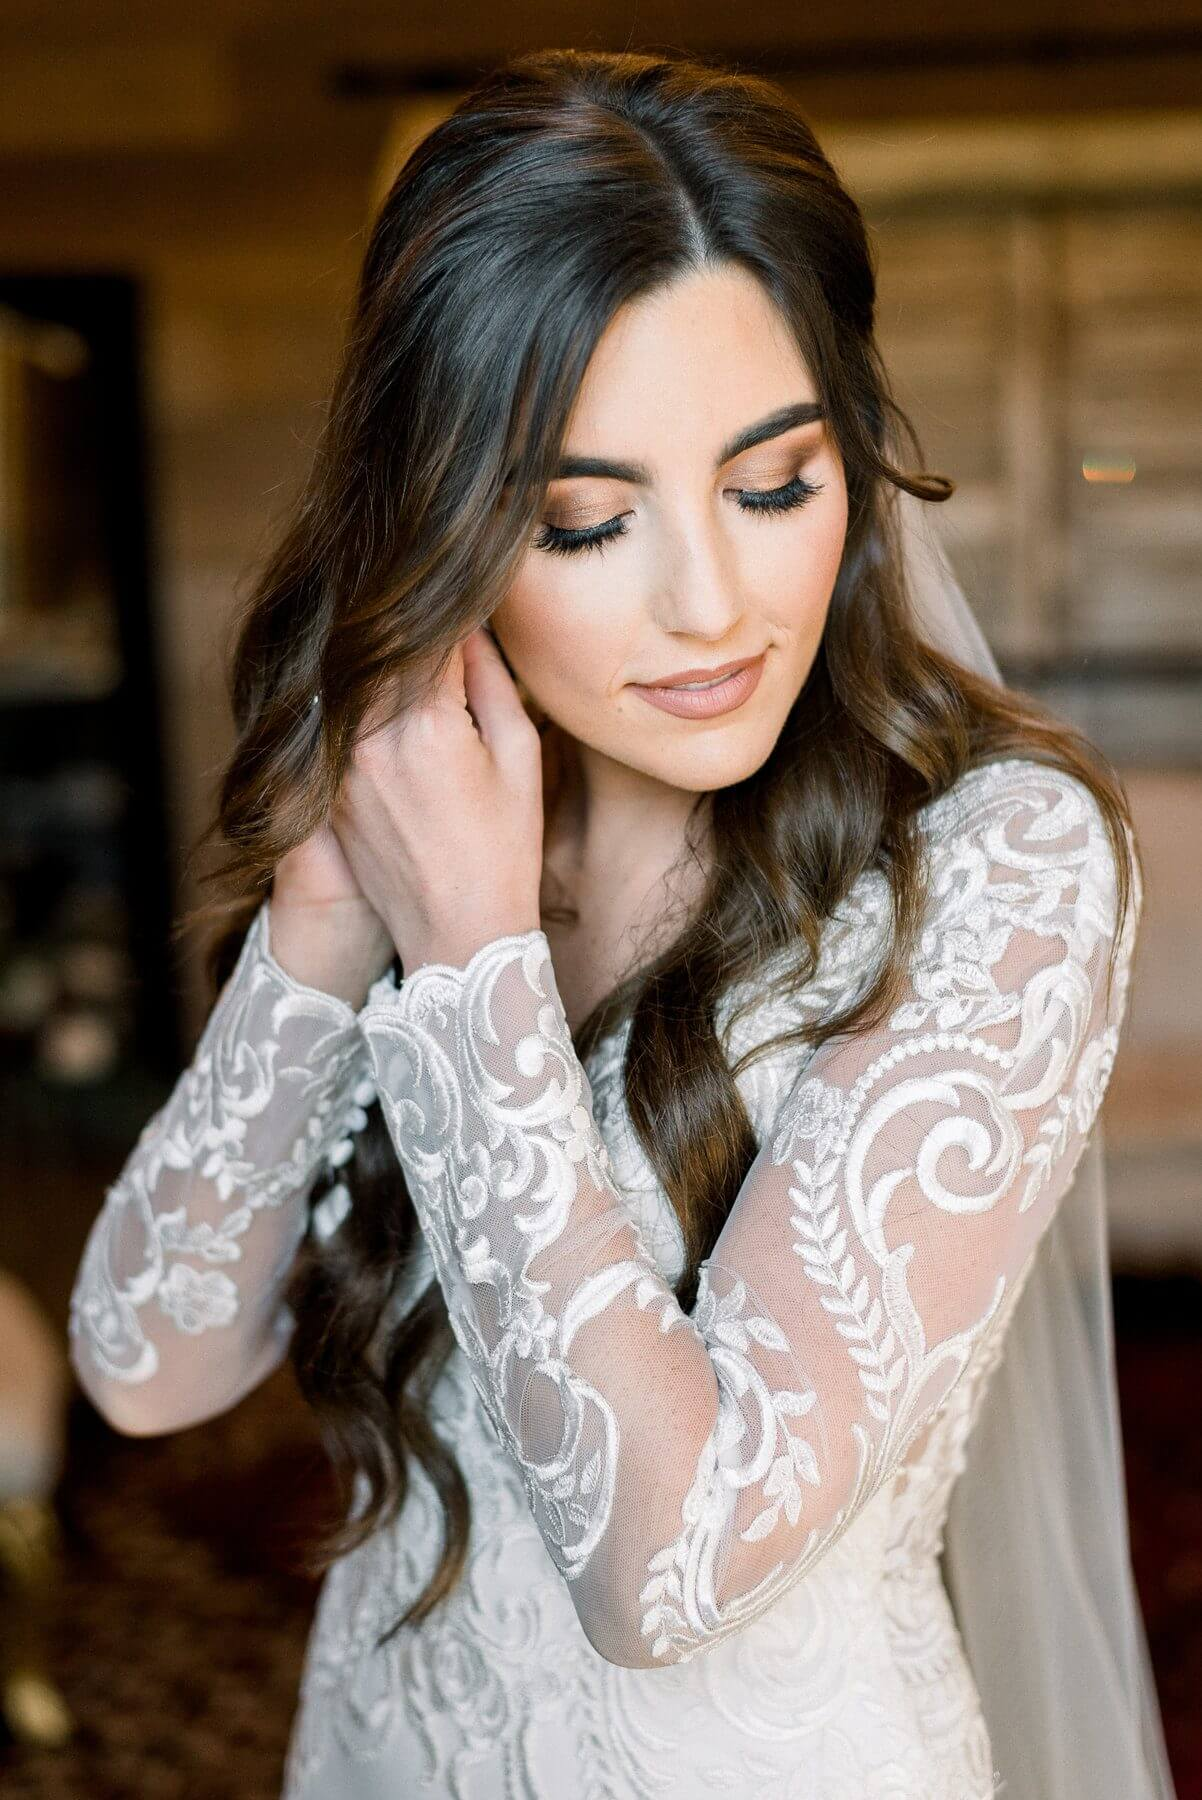 Ashley puts the finishing touches on her bridal look.